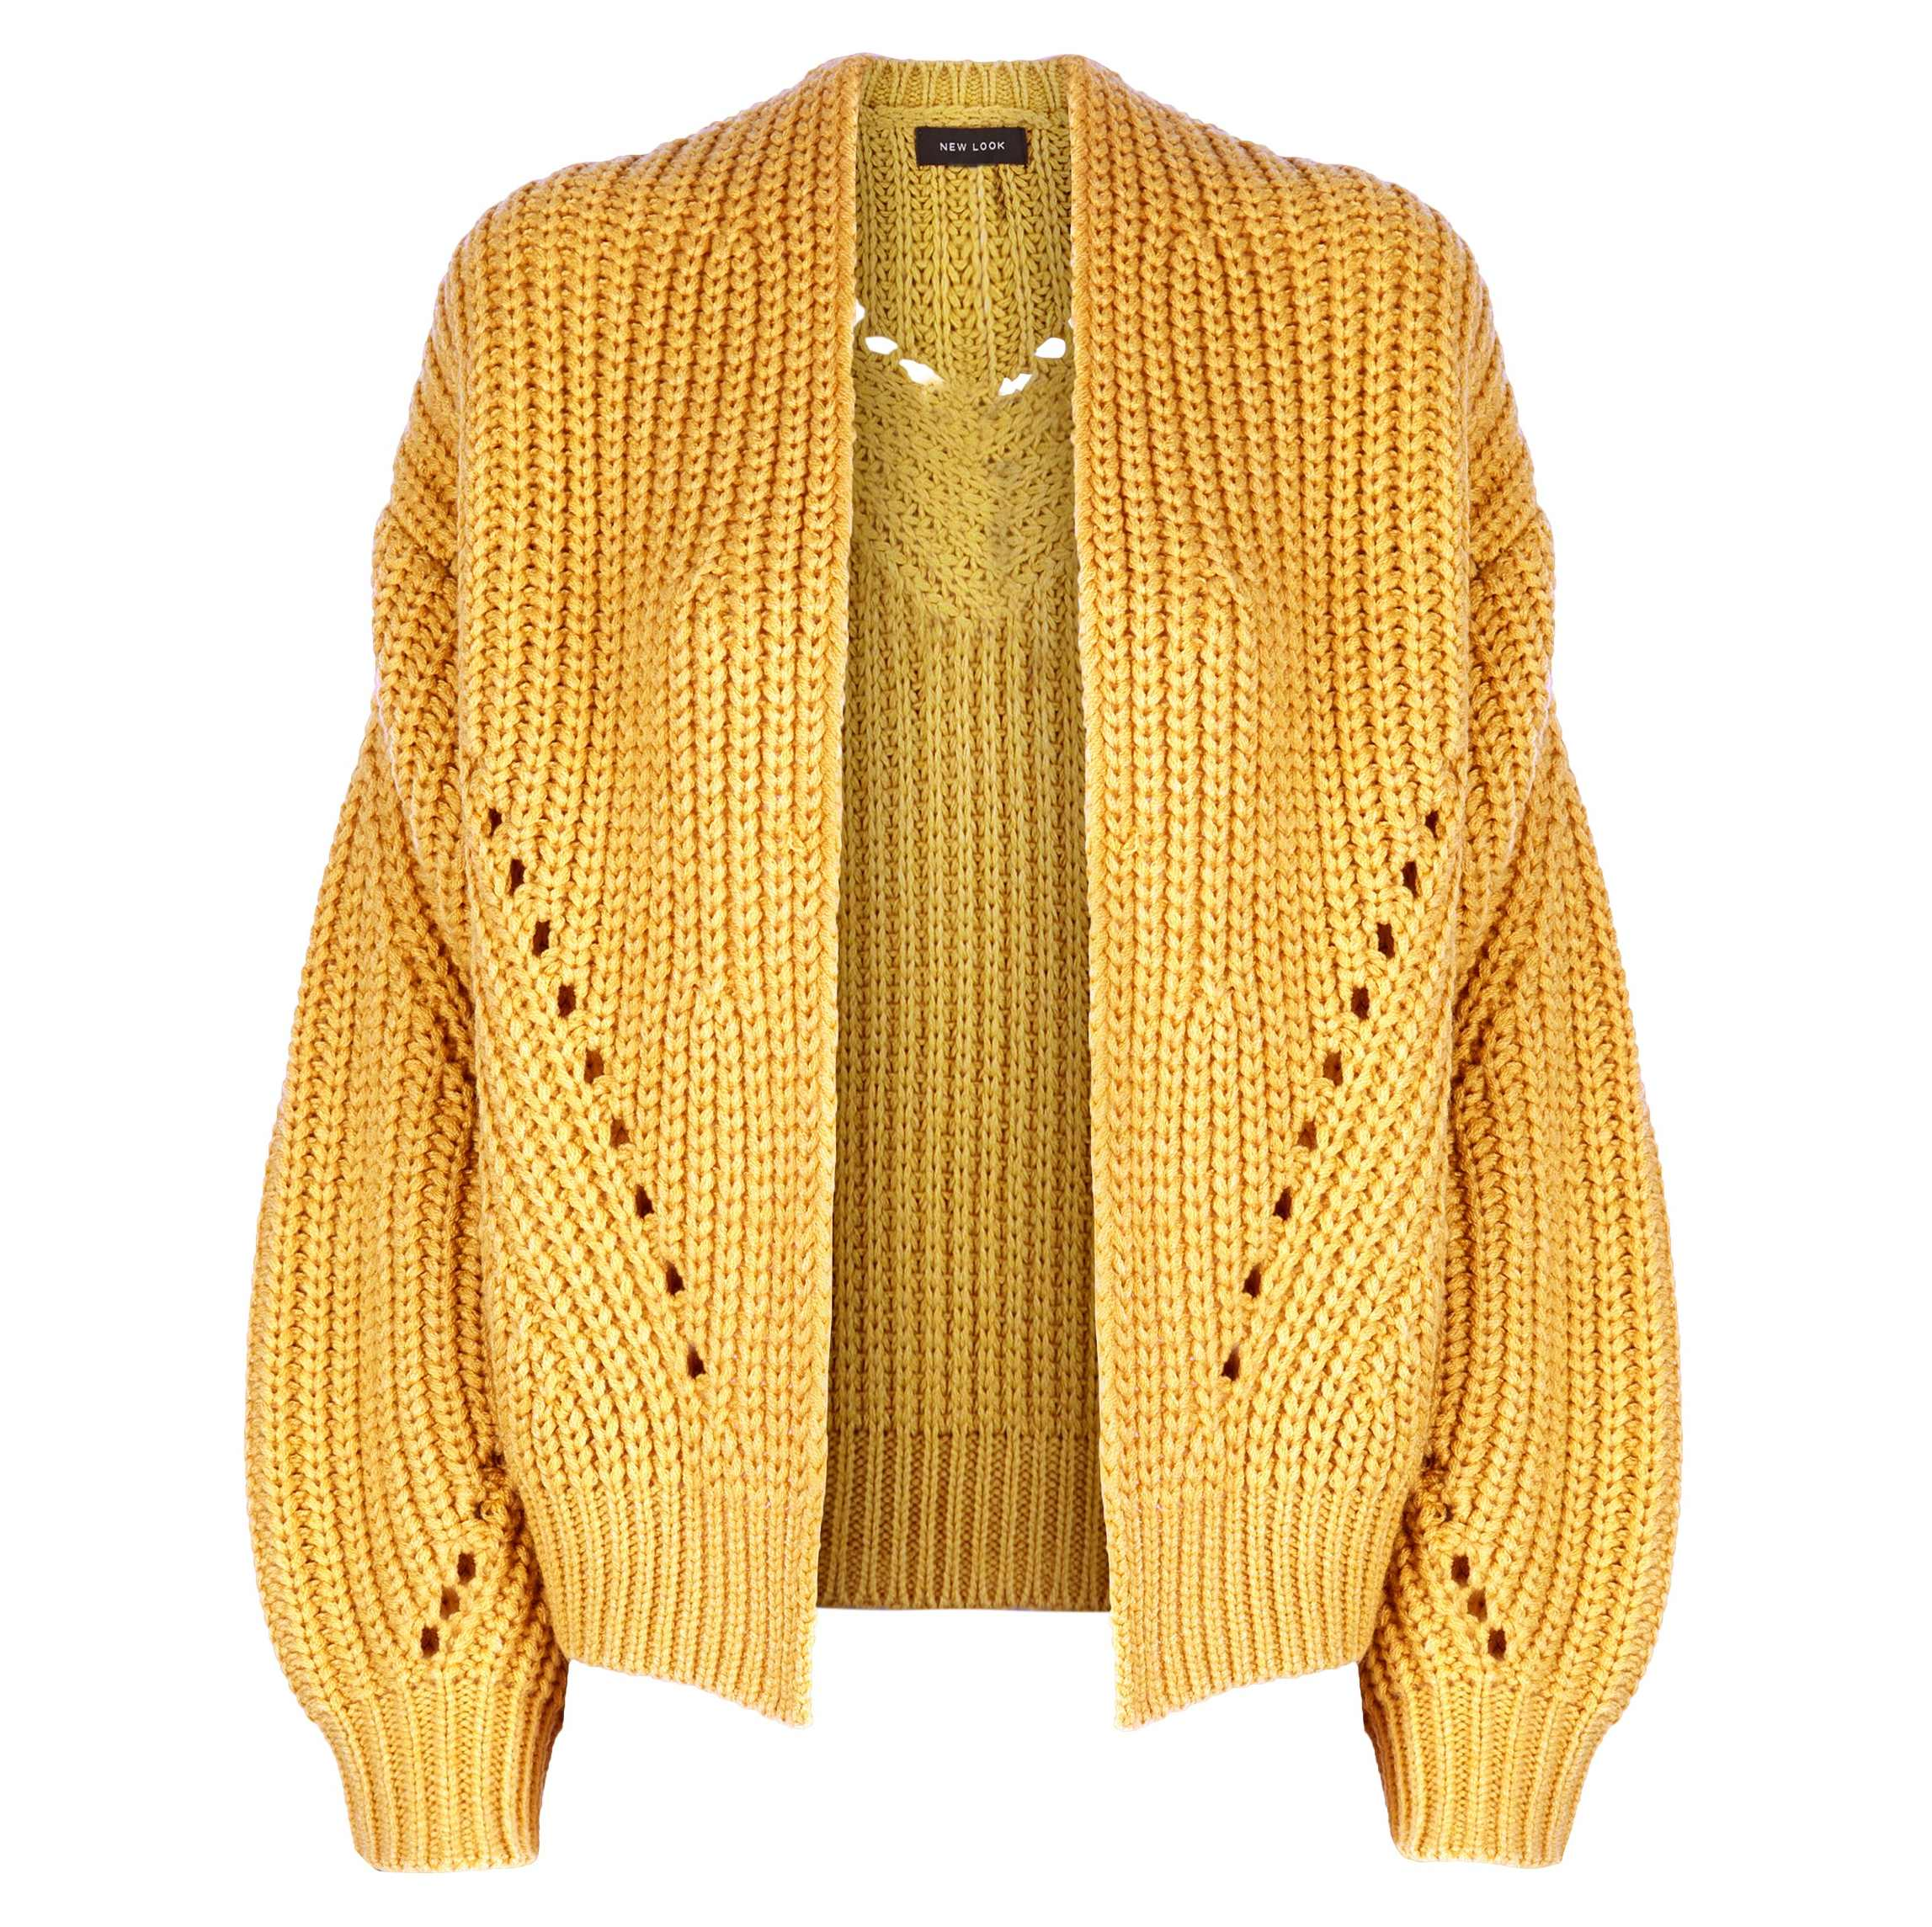 New Look Chunky Knit Mustard Cardigan